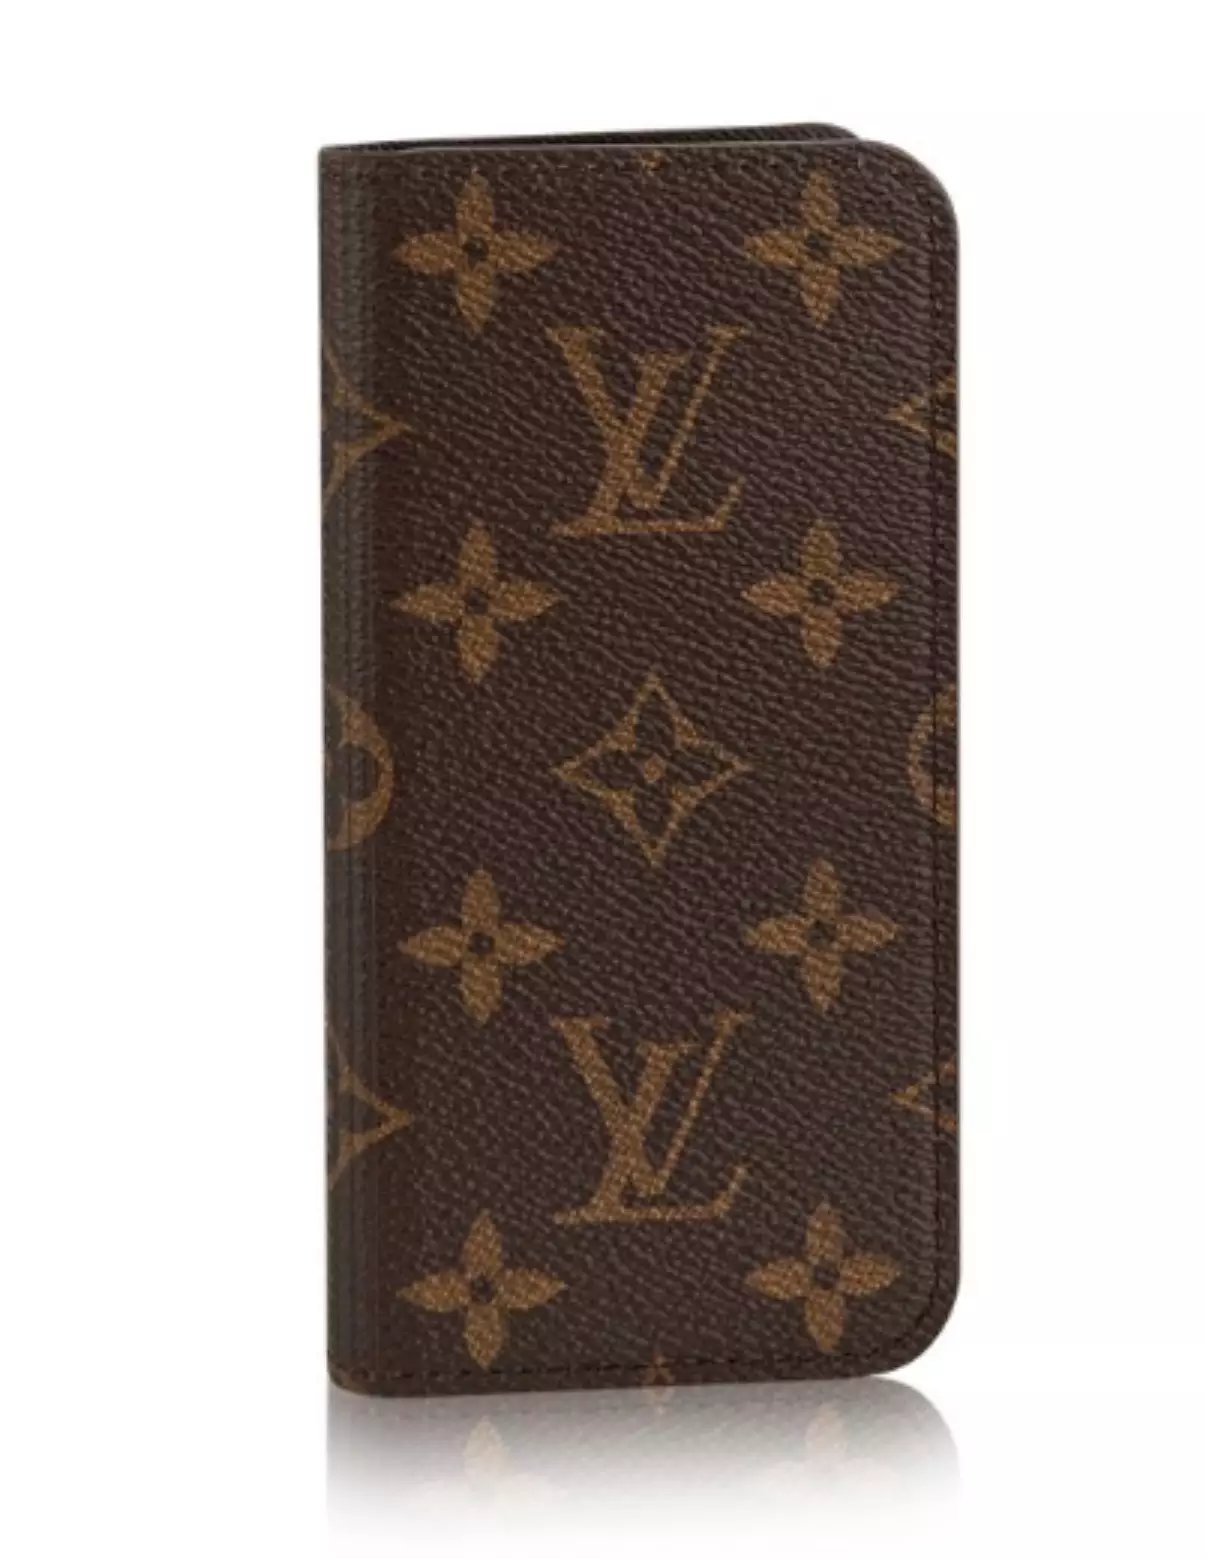 günstige iphone hüllen designer iphone hüllen Louis Vuitton iphone6 plus hülle wann wird das neue iphone vorgestellt handyhüllen shop handyhülle 6lber gestalten iphone 6 Plus hüllen für das iphone 6 Plus apple ca6 iphone 6 Plus die besten iphone 6 Plus hüllen